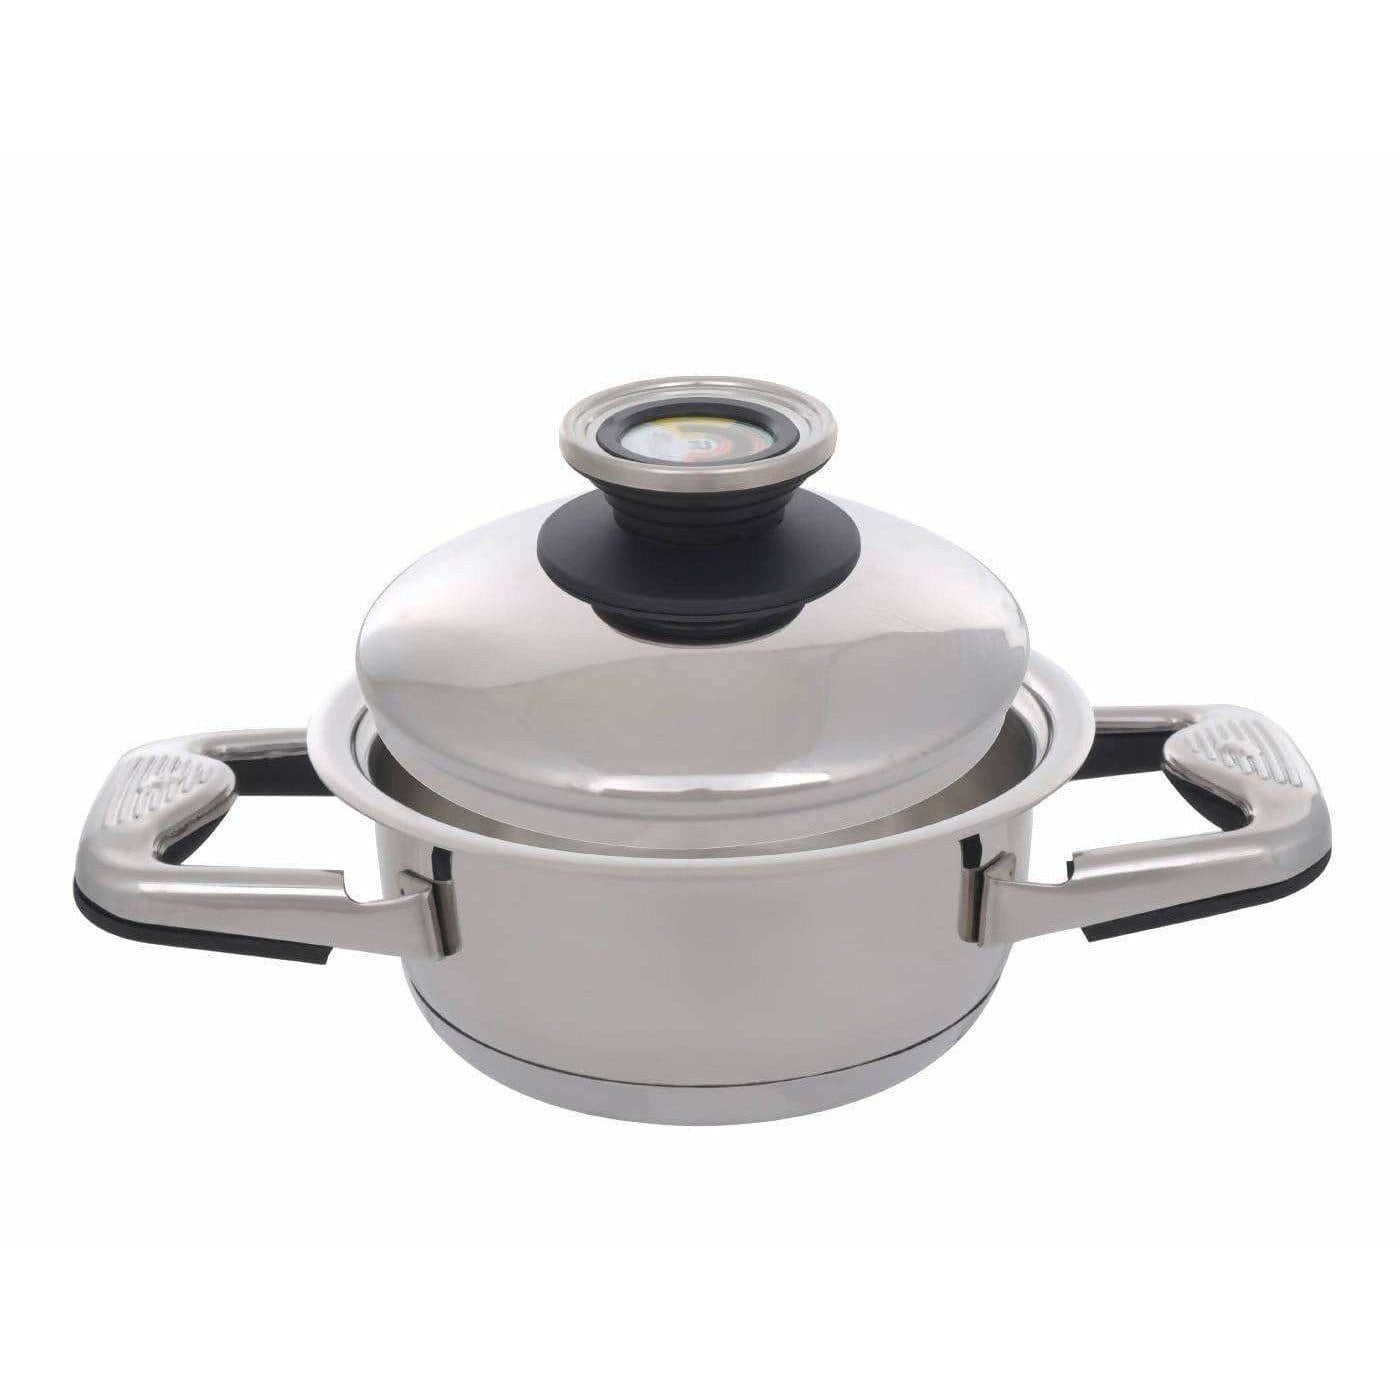 Nutricook - High grade SS 316L Cookware Oil Less & Water Less Sauce Pot with Lid 2.2 Litre 18 cm dia